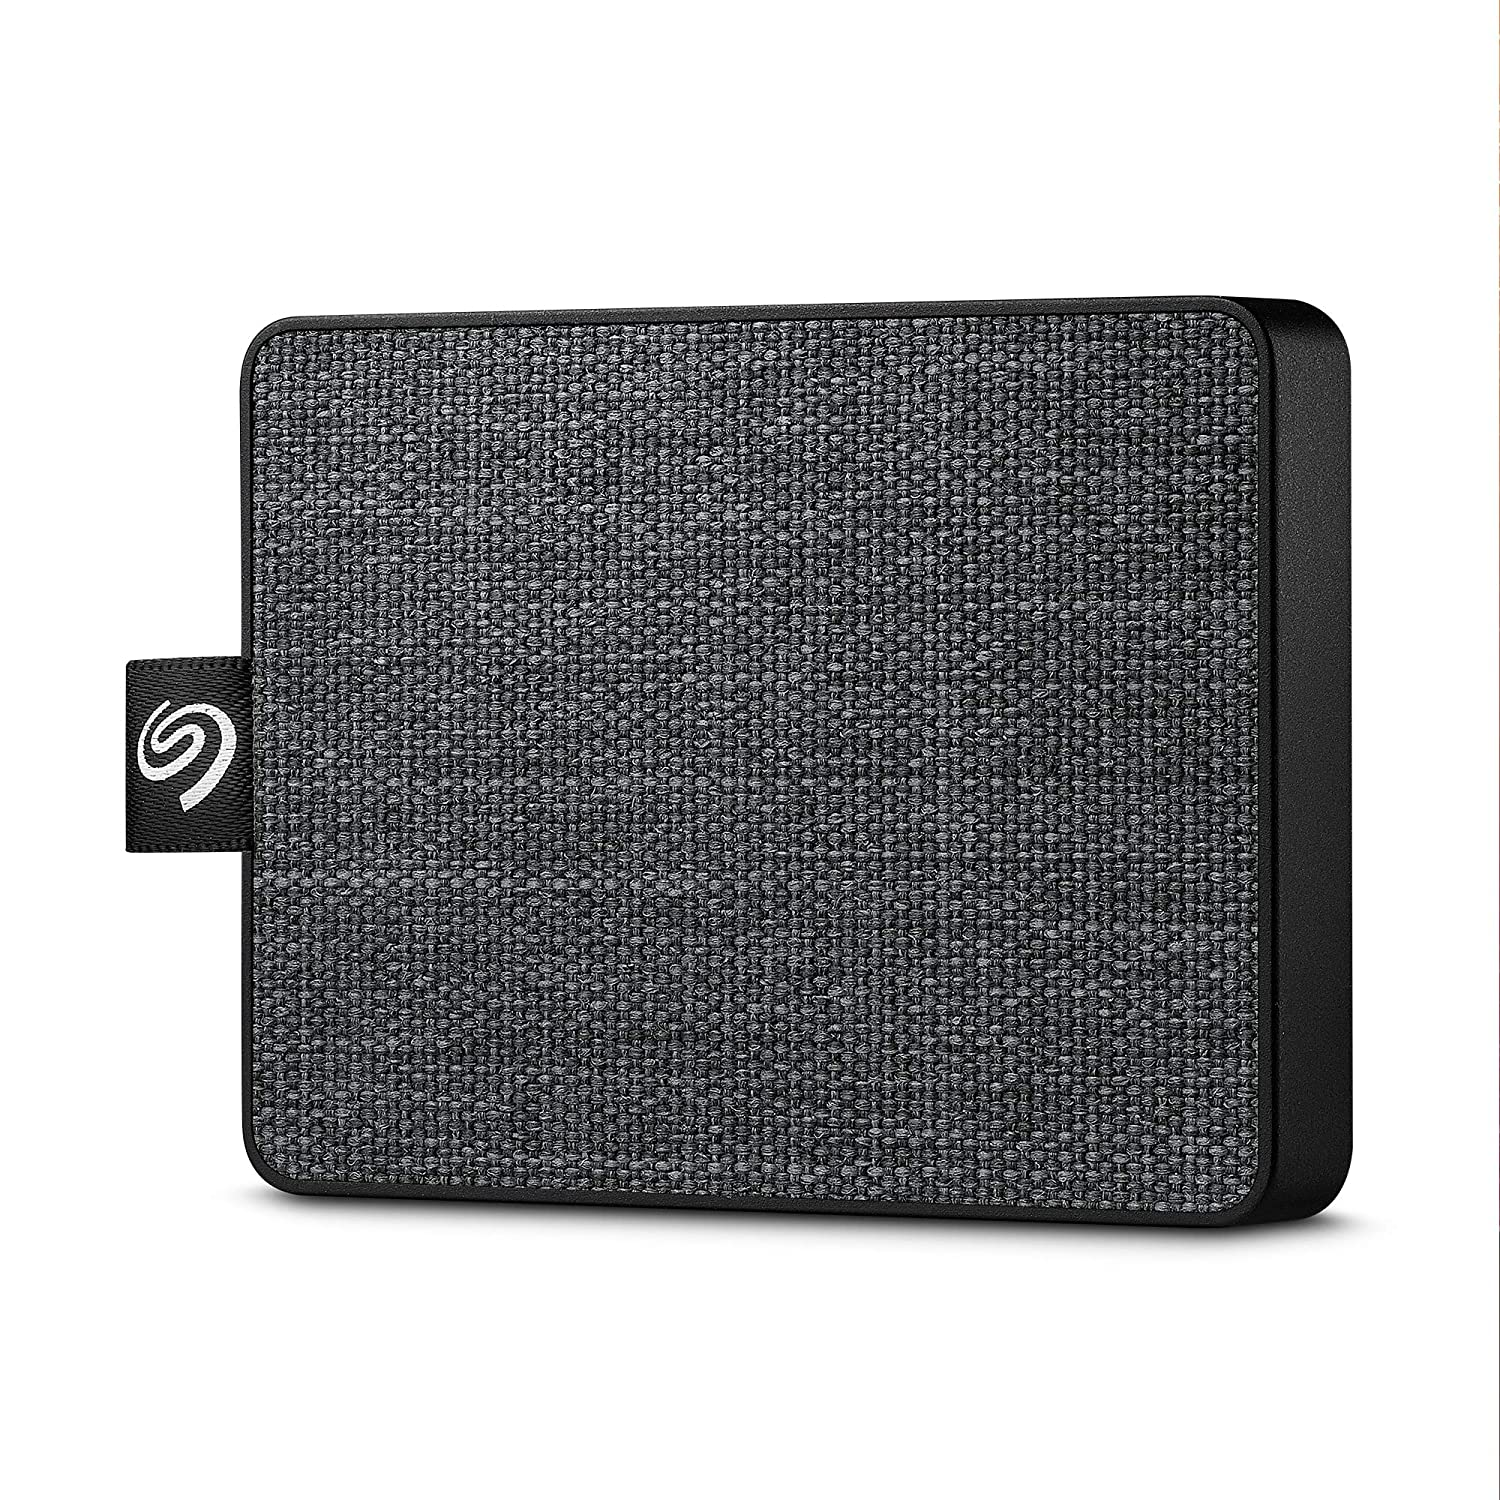 Seagate One Touch SSD 500GB External Solid State Drive